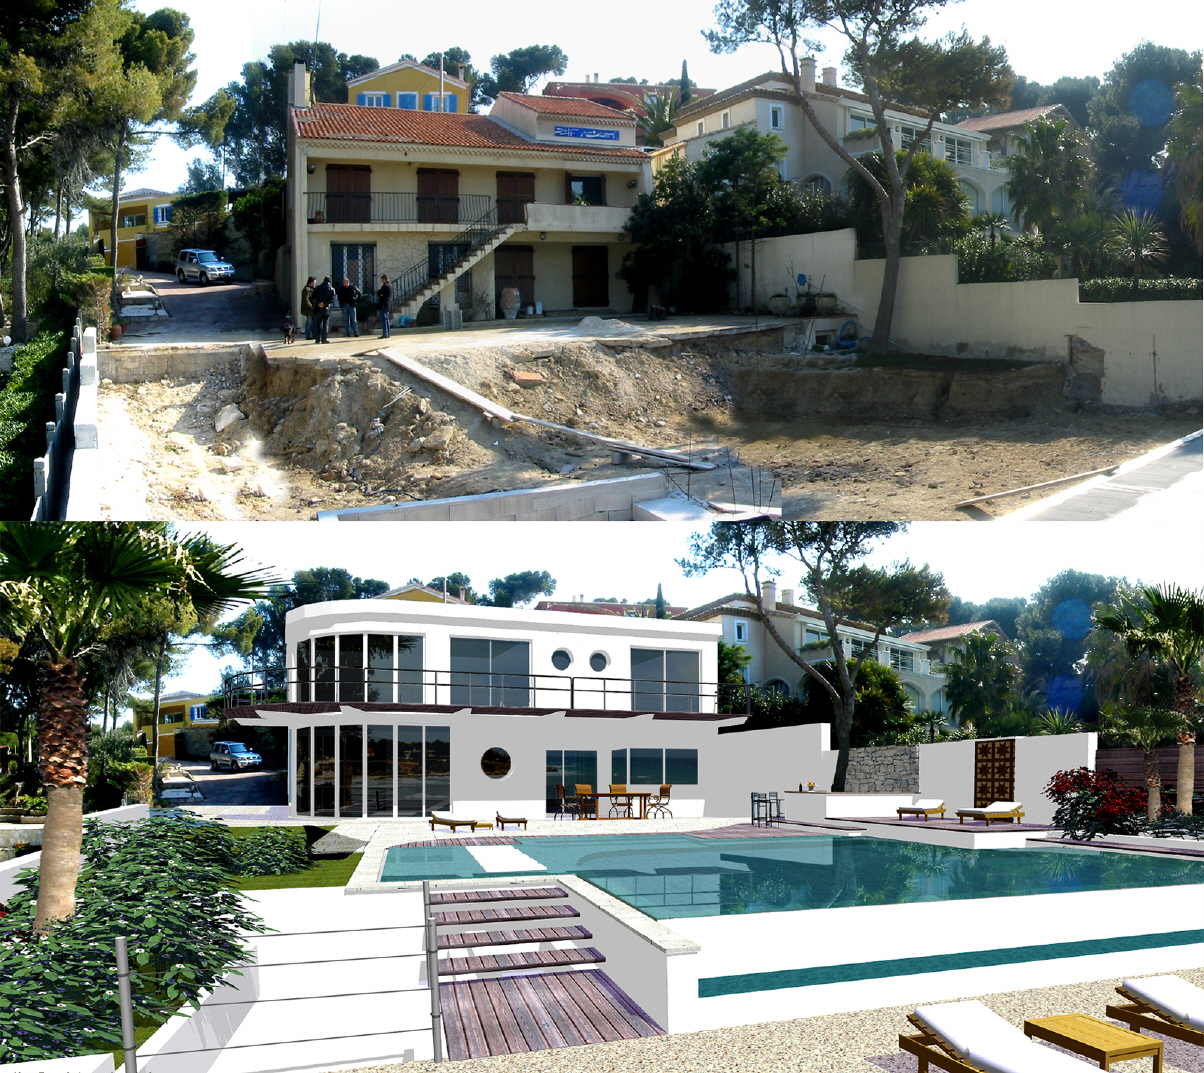 Relooking piscine architecte piscine d coration piscine for Relooking maison exterieur